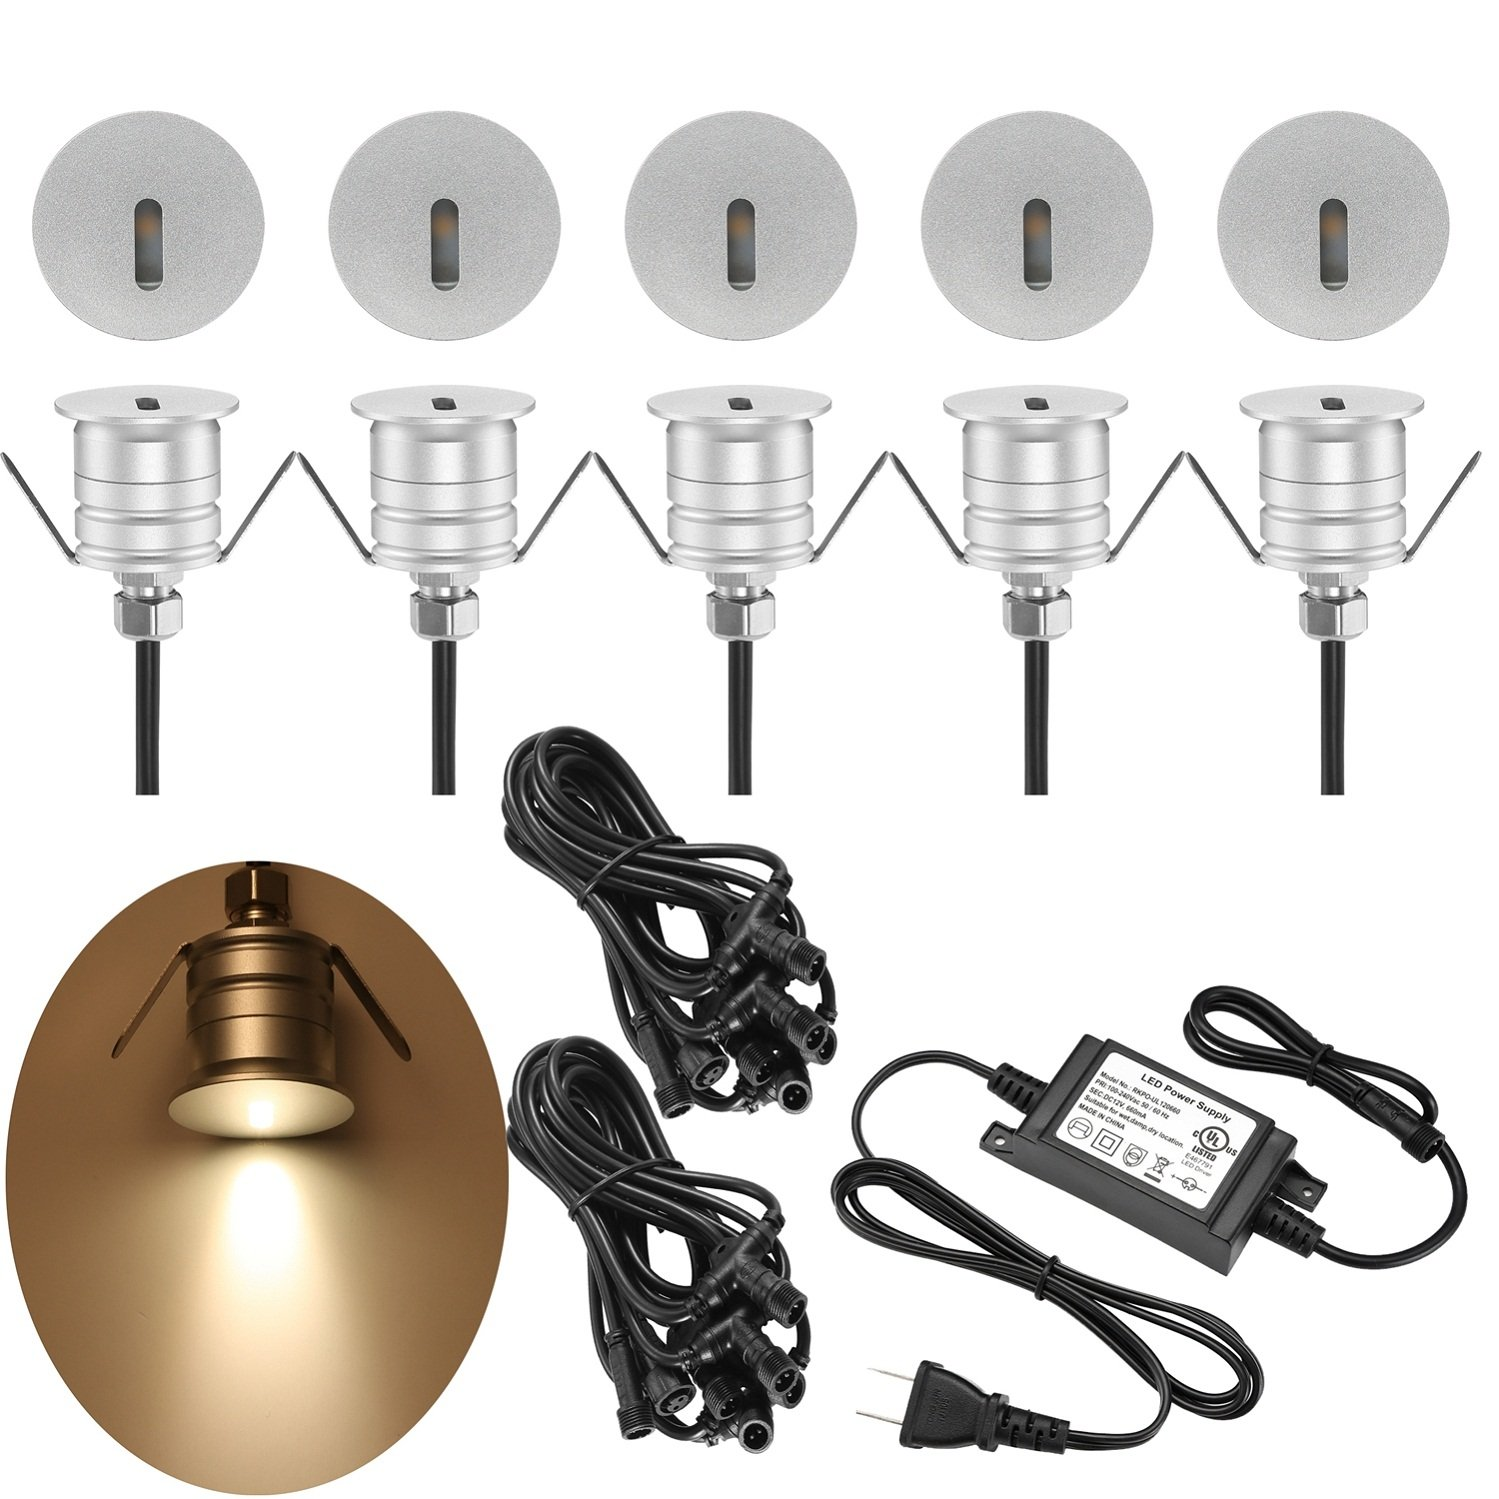 SUMAOTE Deck Lights Kit 12V Low Voltage Waterproof Recessed Deck Lamp High Bright In Ground for Stair Patio Garden Yard Wood Floor Outdoor Landscape Lights Warm White, Pack of 10 by SUMAOTE